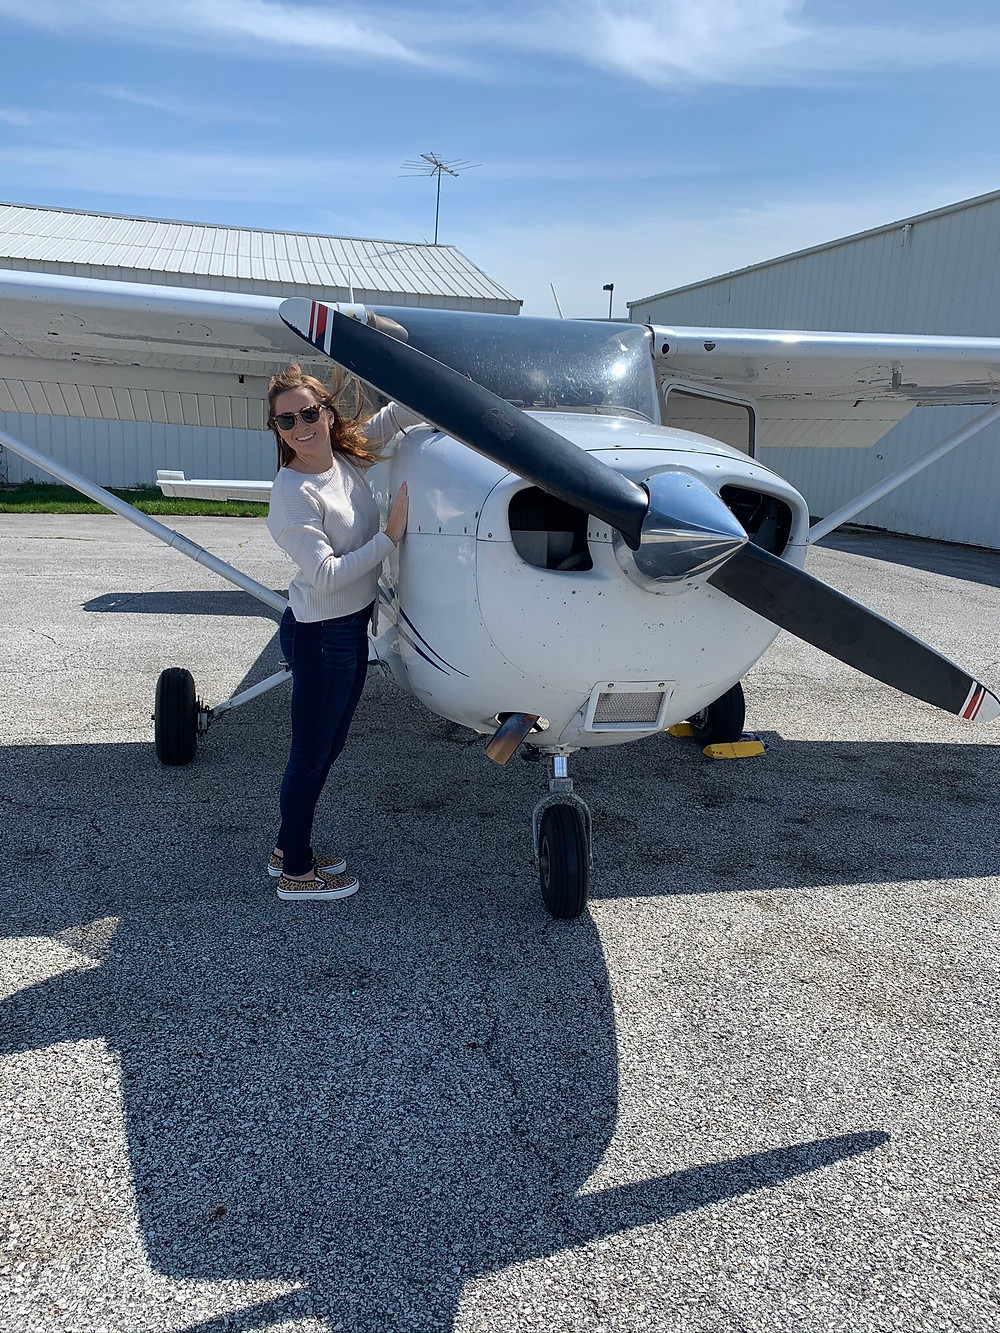 Boone Grove senior Piper Kimes not only lifts off as a conference-winning pole vaulter but also as a pilot. She will do both at Embry-Riddle next year. (Provided)